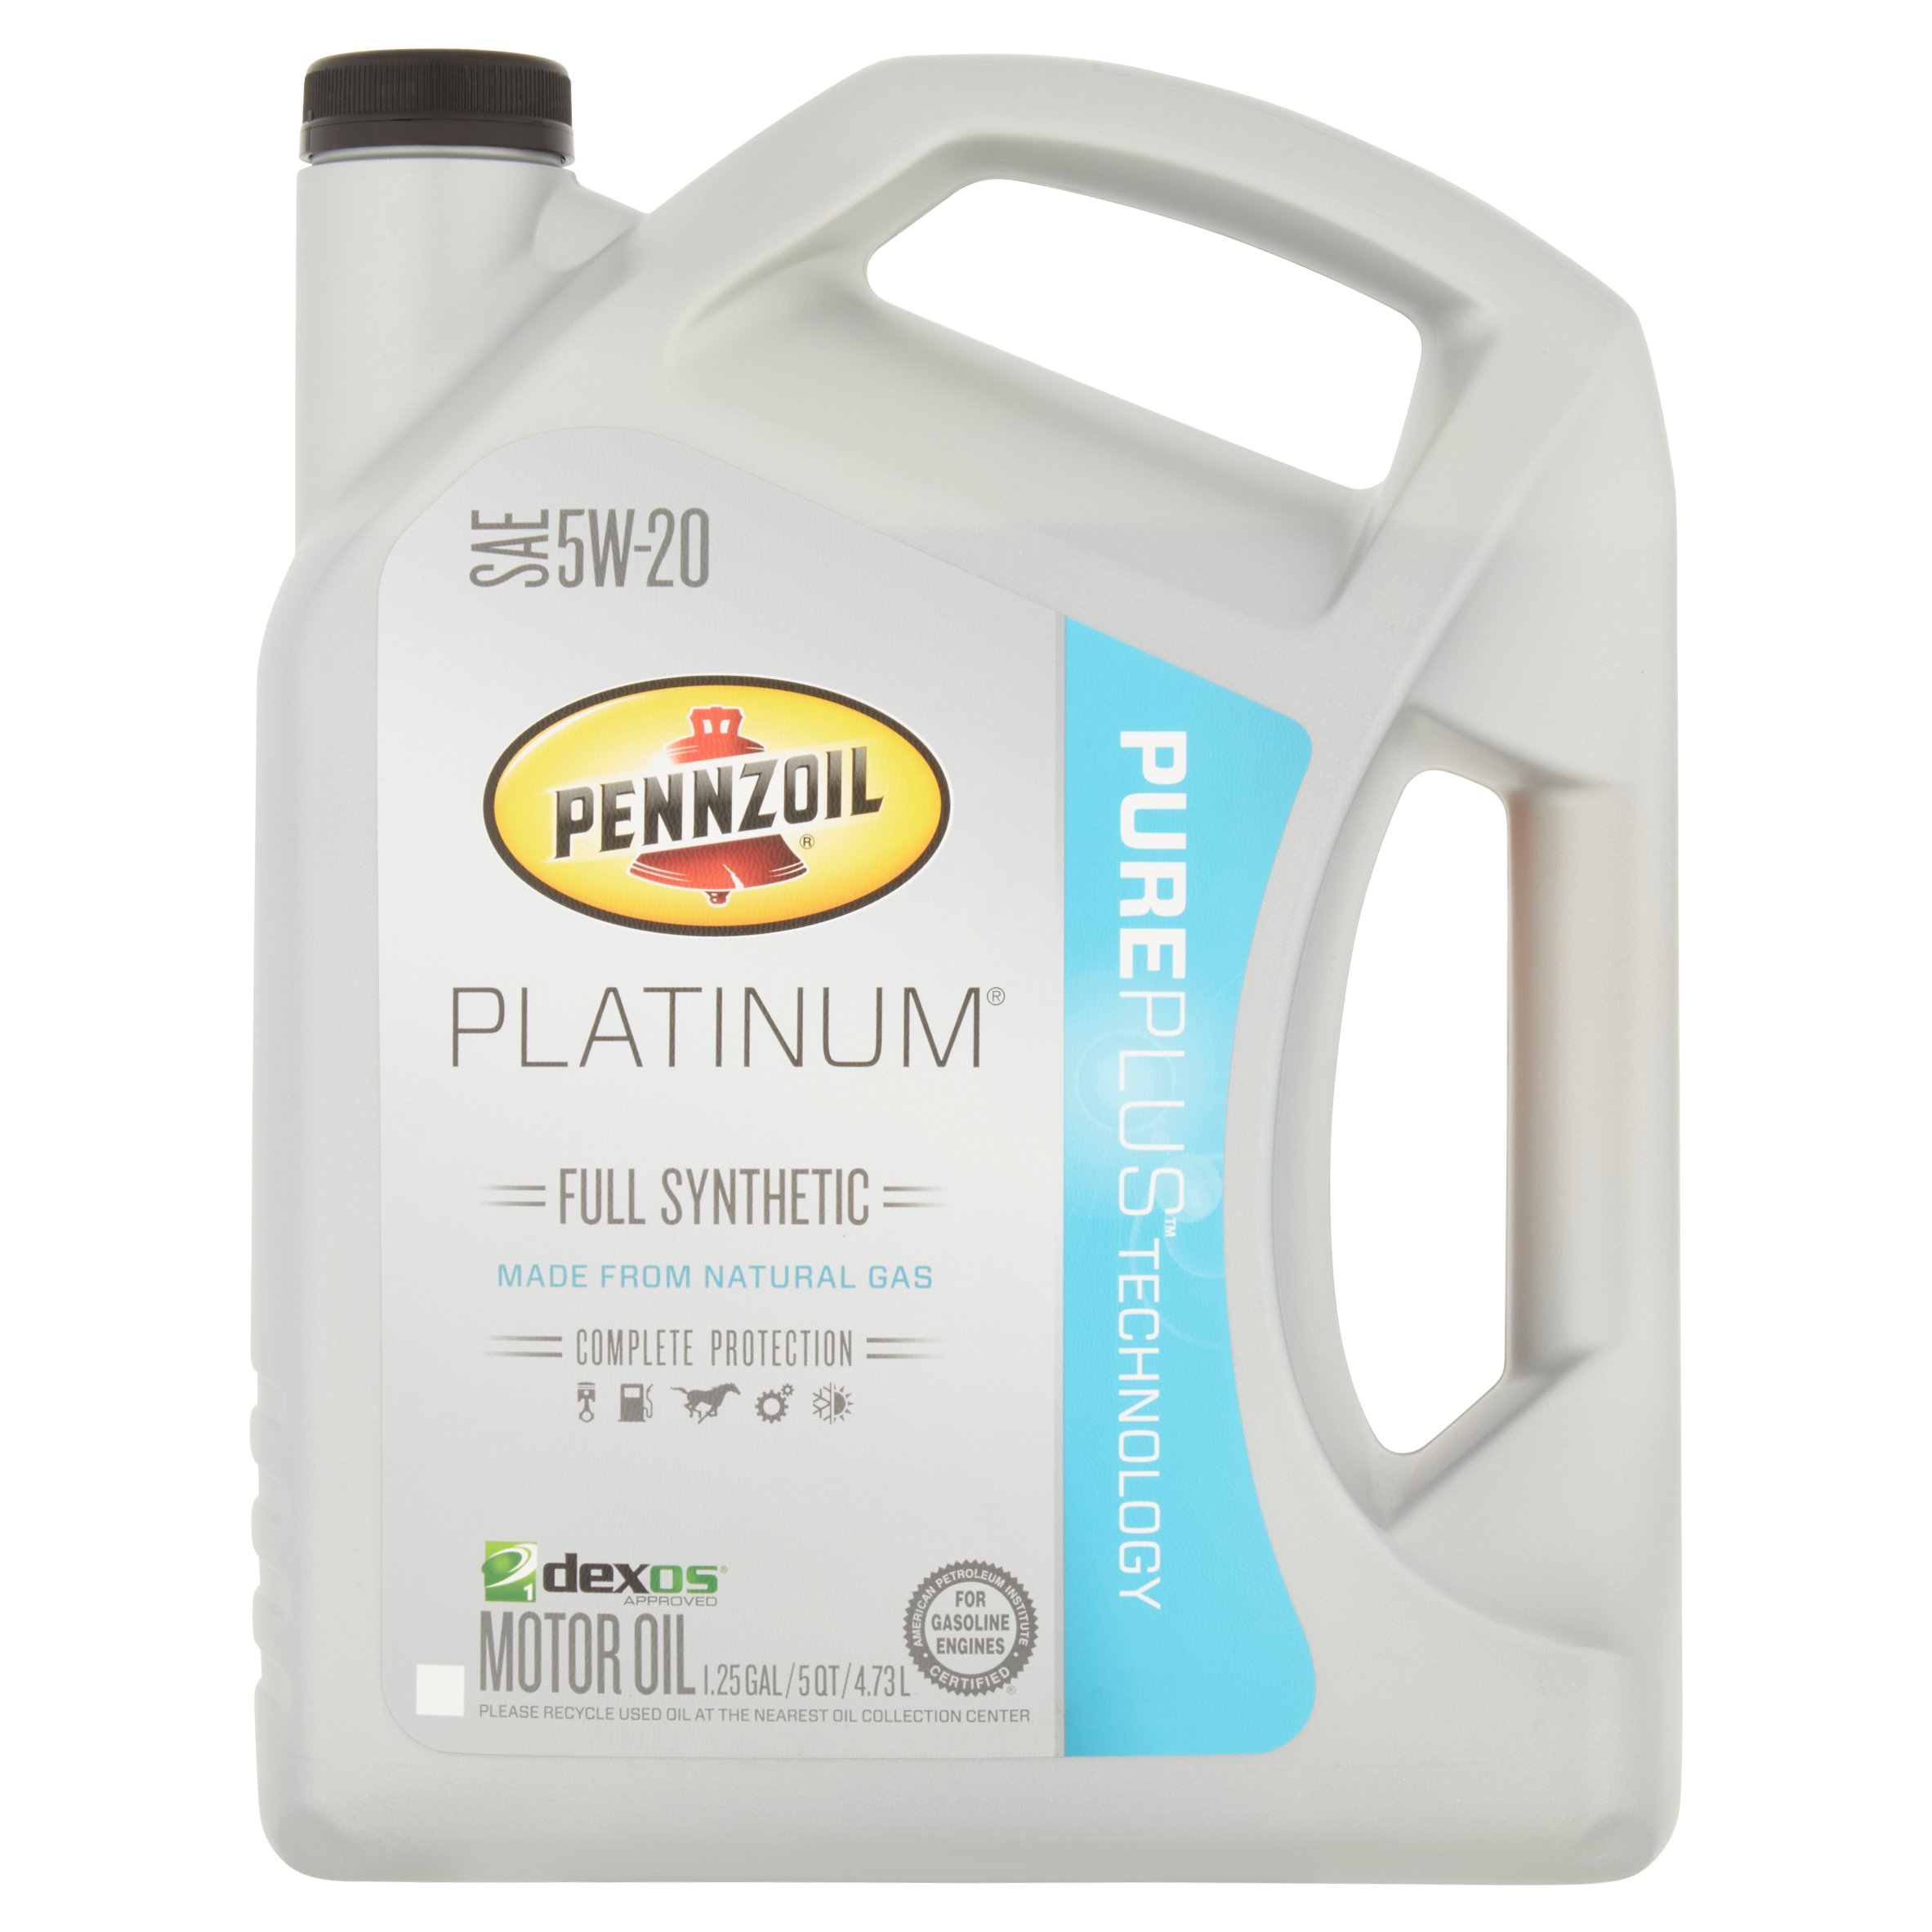 Pennzoil 5W20 Full Synthetic Platinum Motor Oil, 5 qt